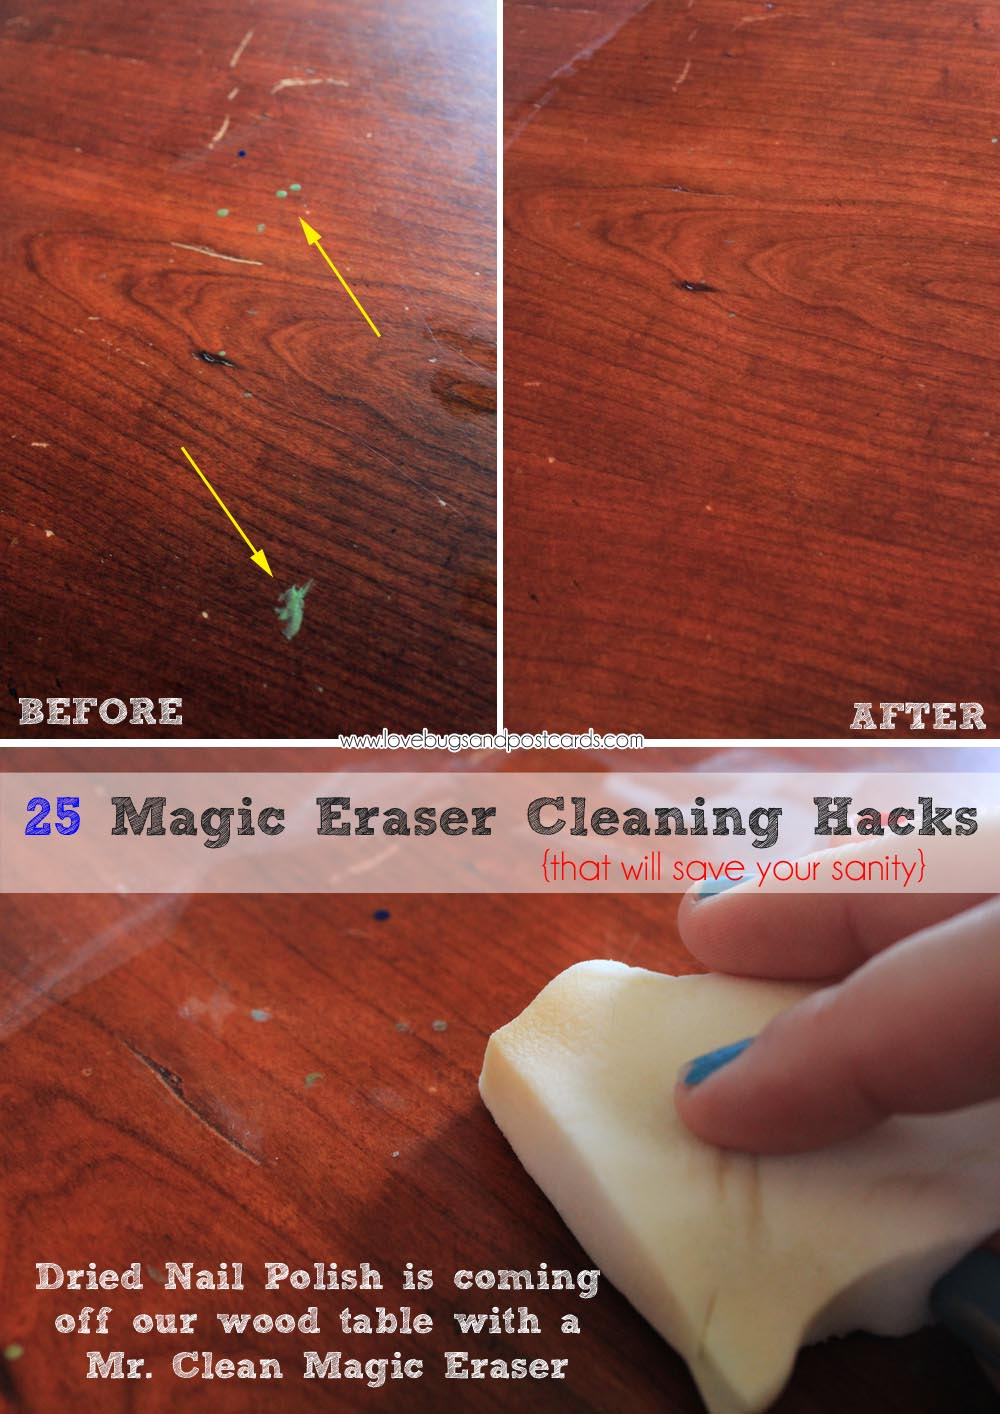 25 Magic Eraser Cleaning Hacks That Will Save Your Sanity